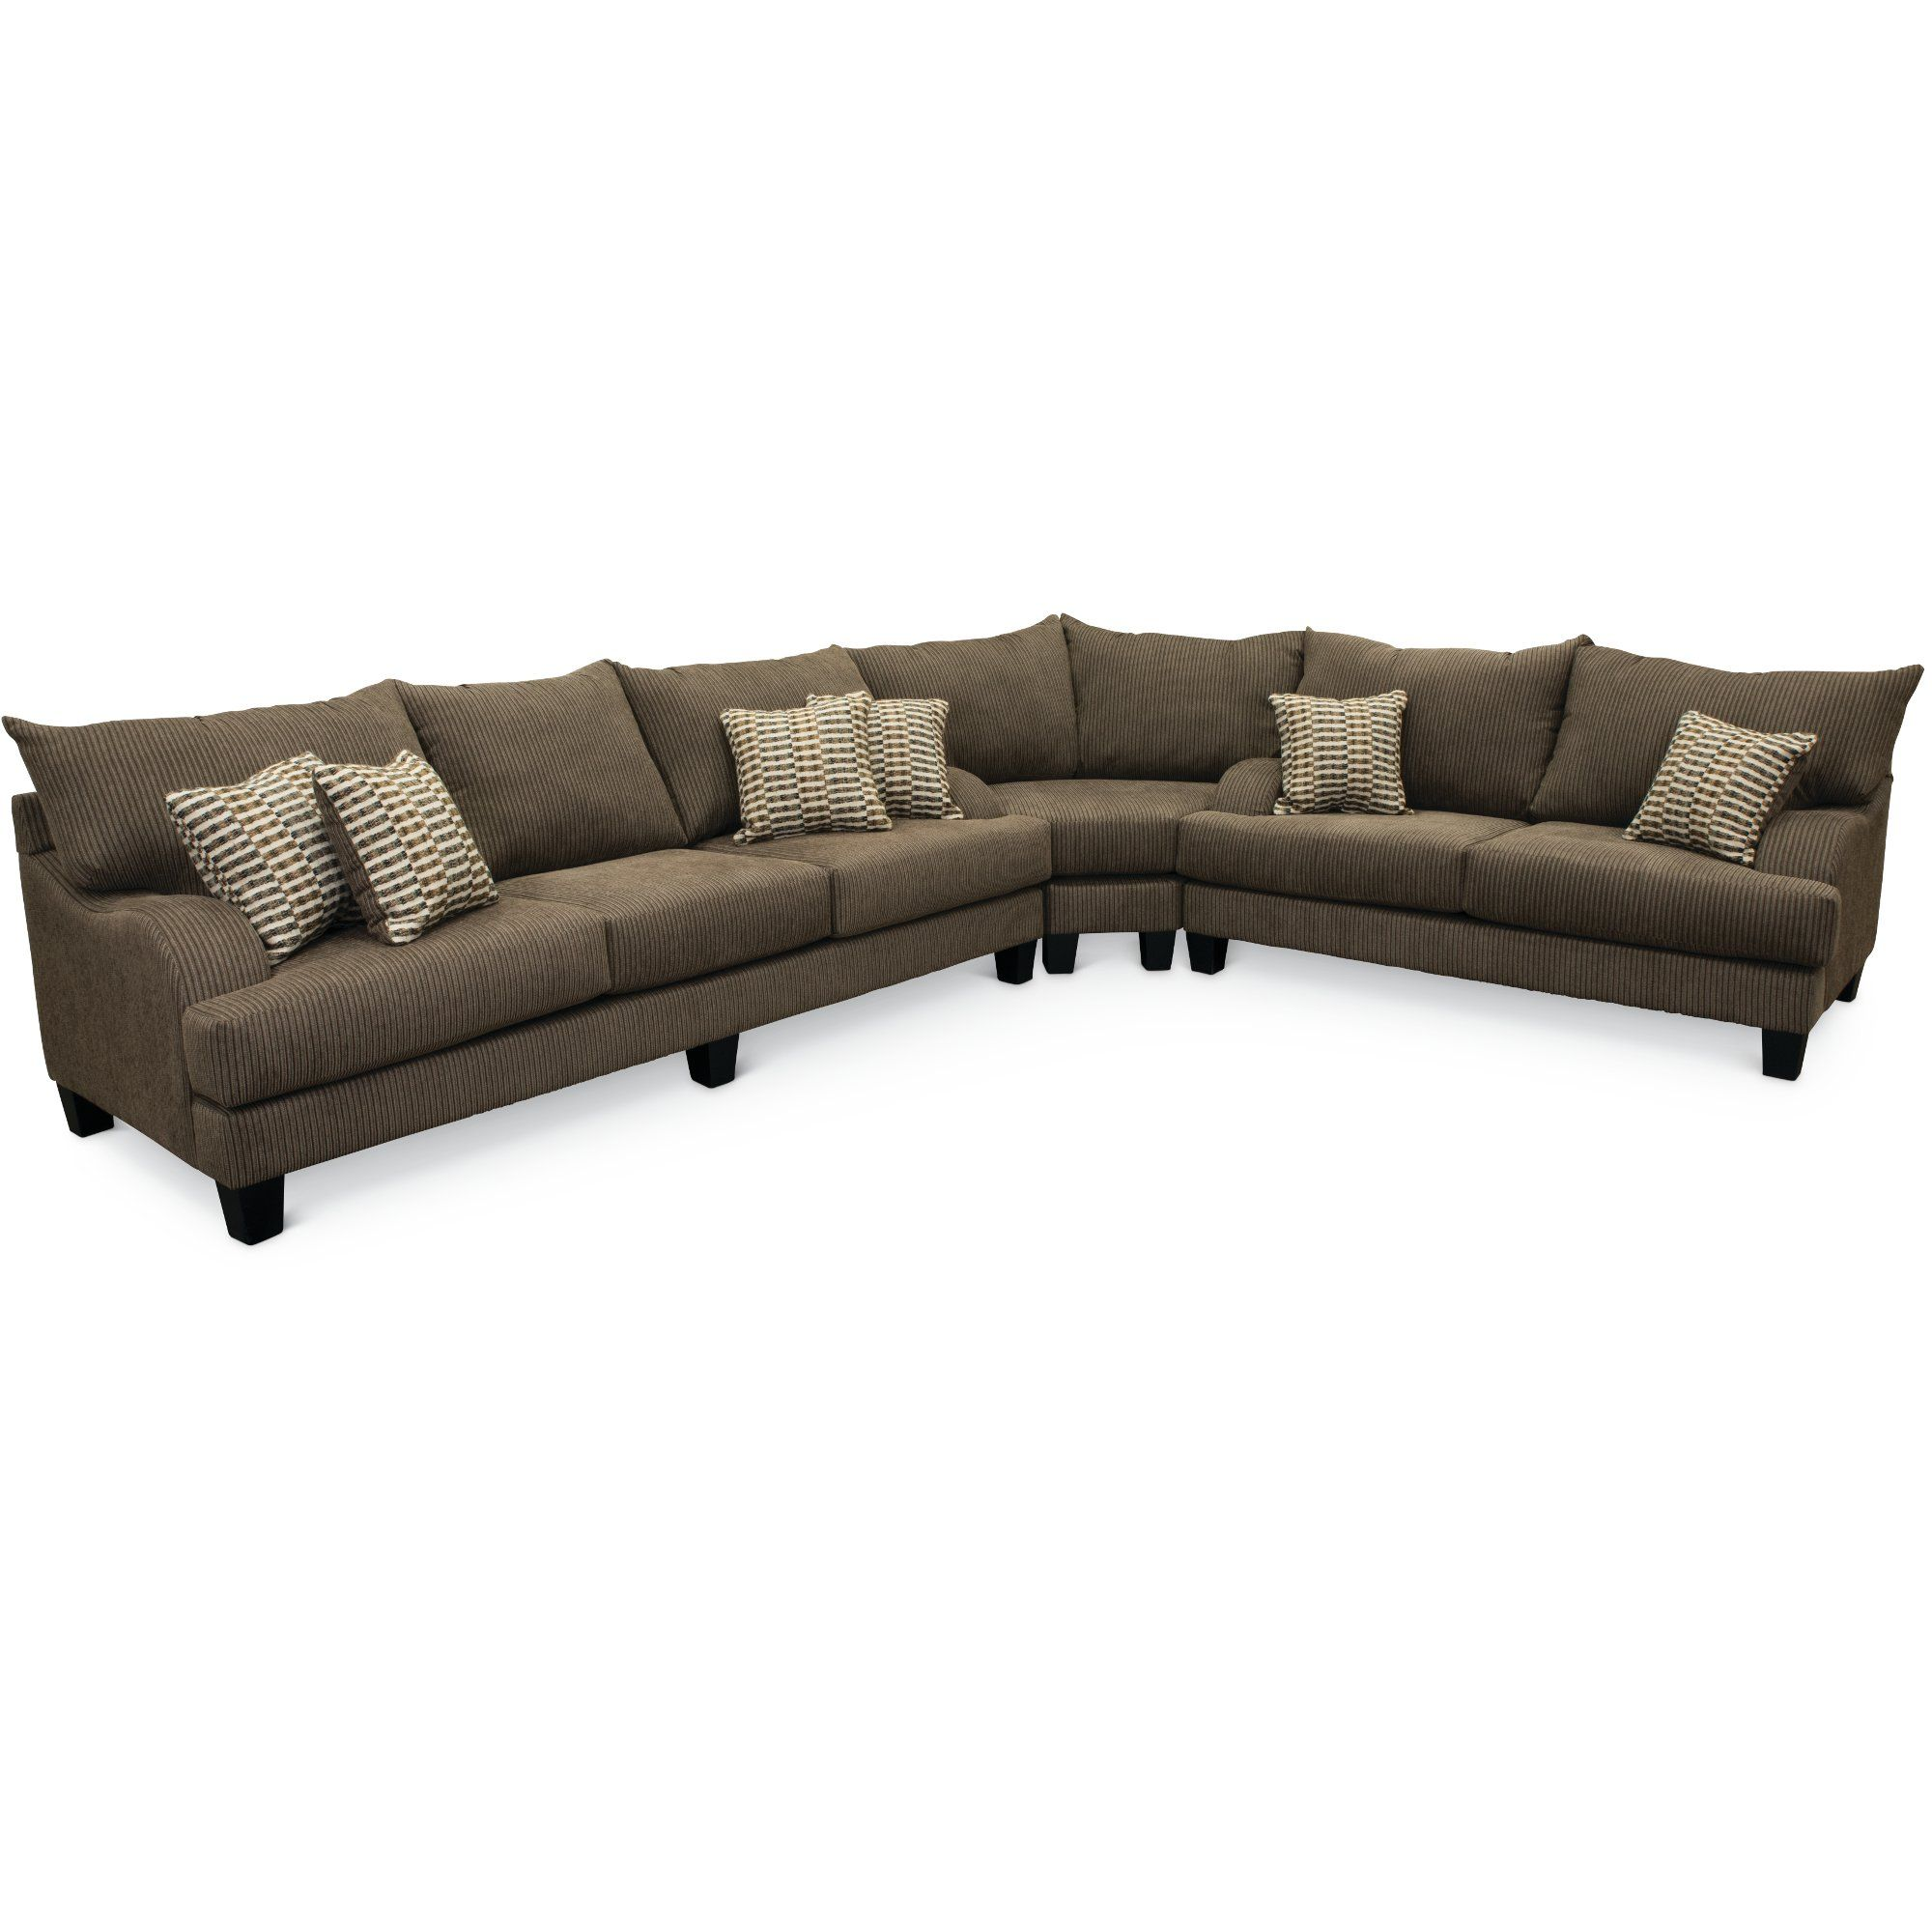 Marvelous Contemporary Dark Gray 3 Piece Sectional Sofa Laguna Alphanode Cool Chair Designs And Ideas Alphanodeonline